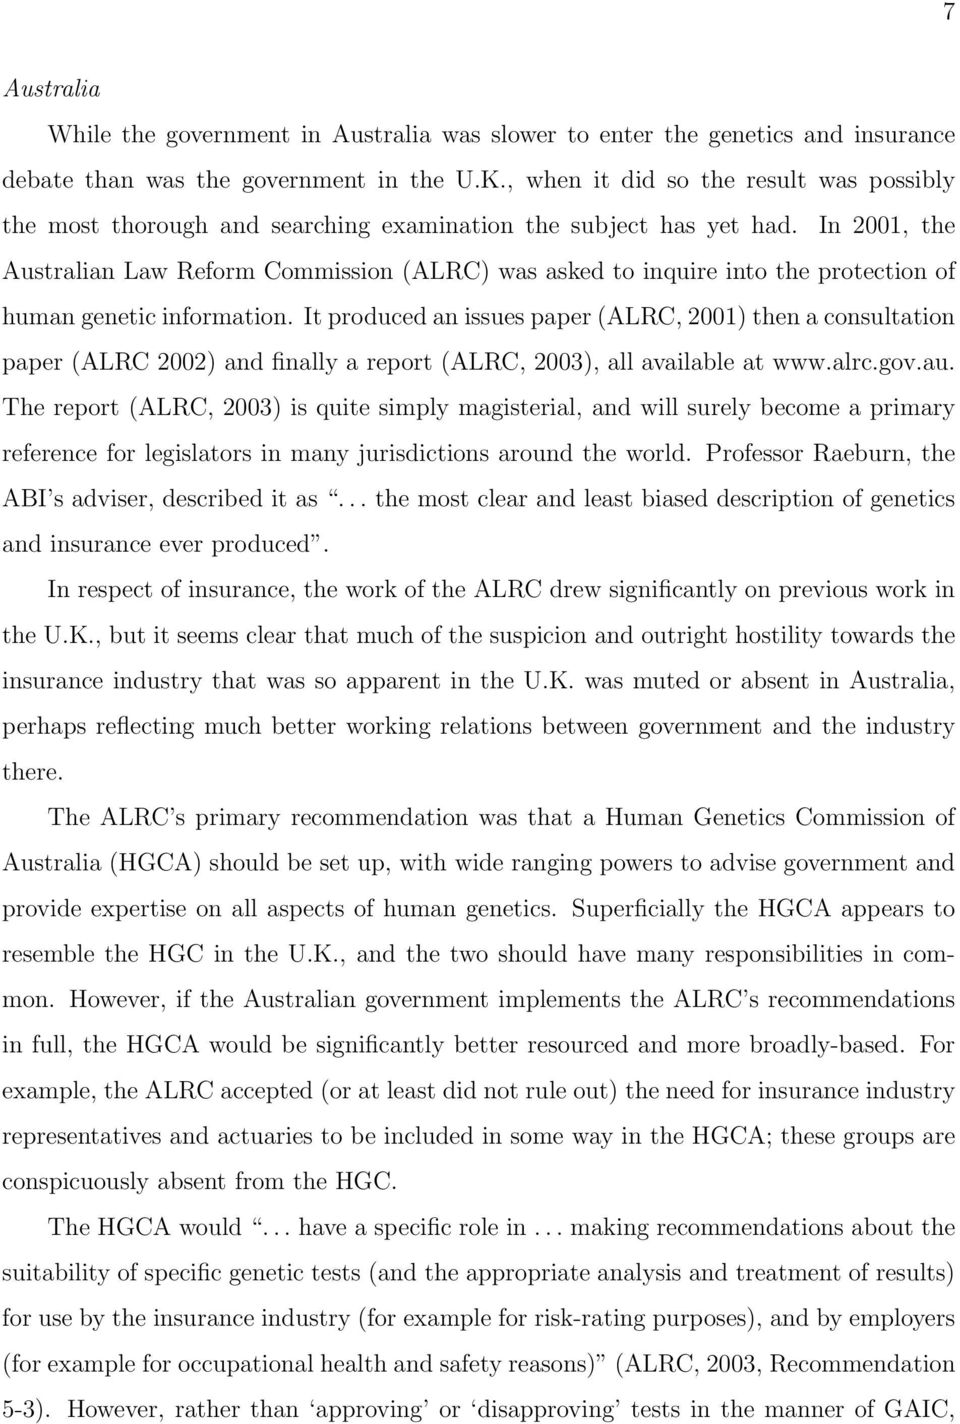 In 2001, the Australian Law Reform Commission (ALRC) was asked to inquire into the protection of human genetic information.